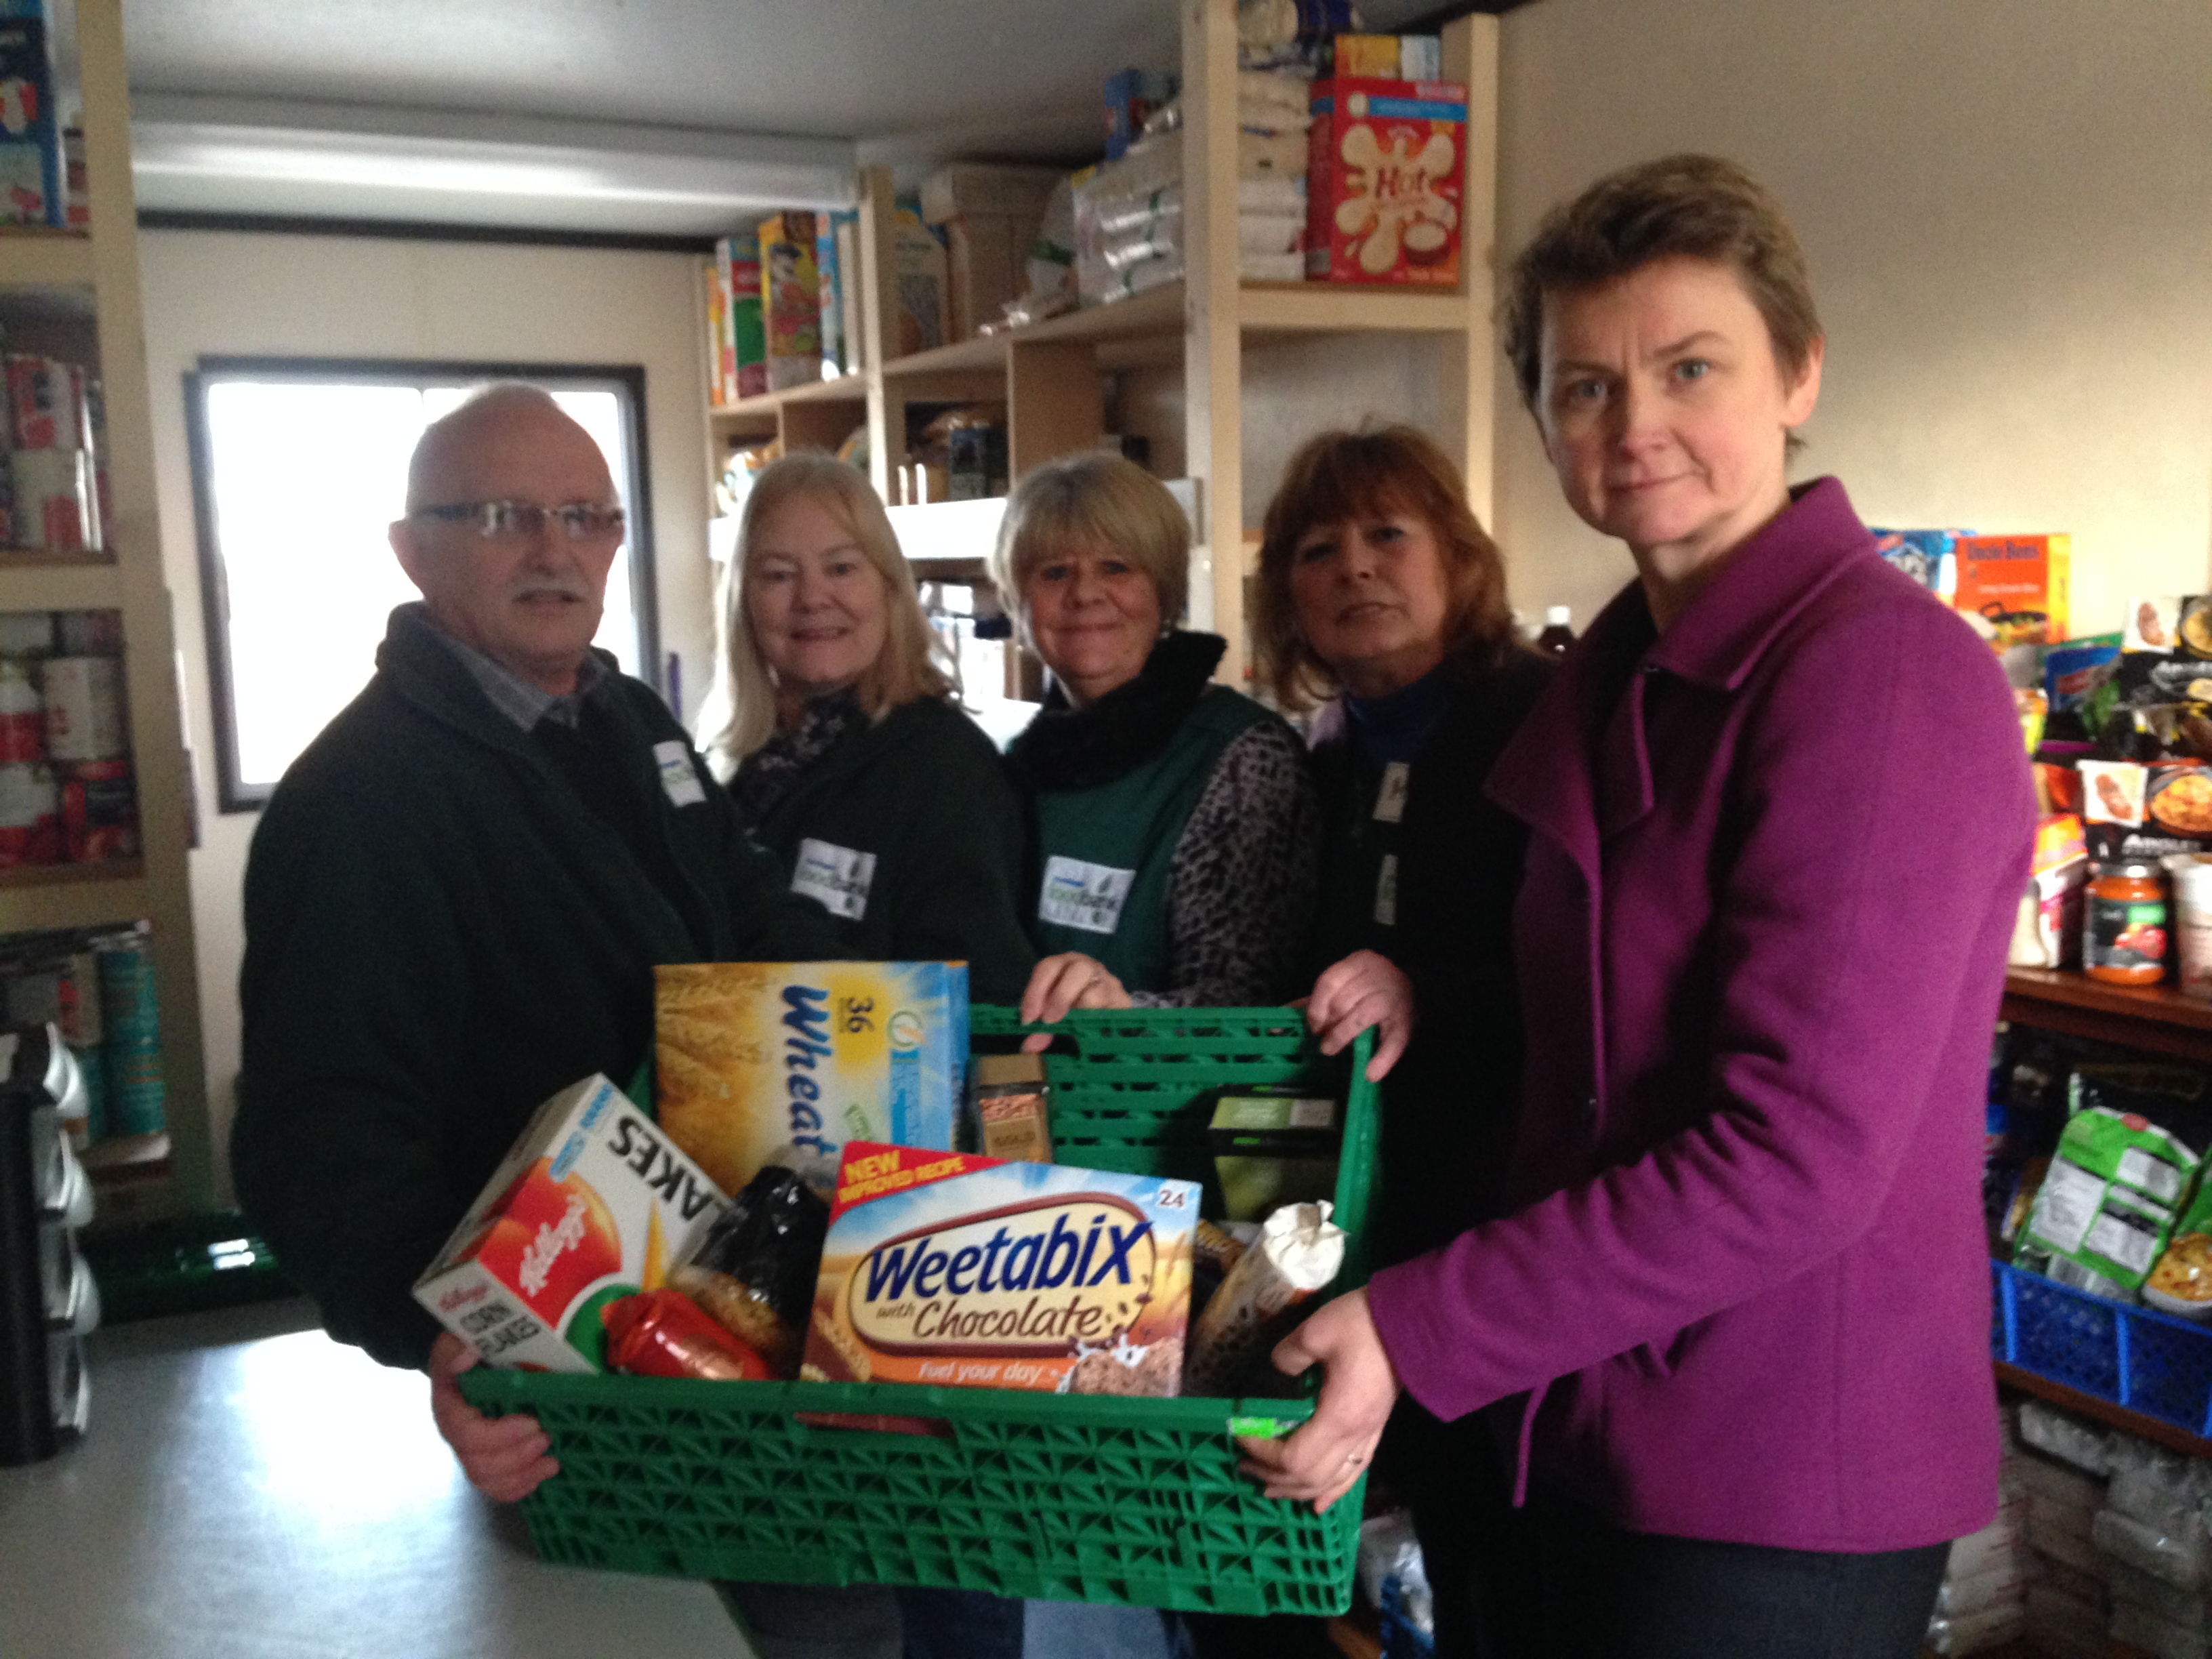 Yvette_at_Knottingley_food_bank.JPG